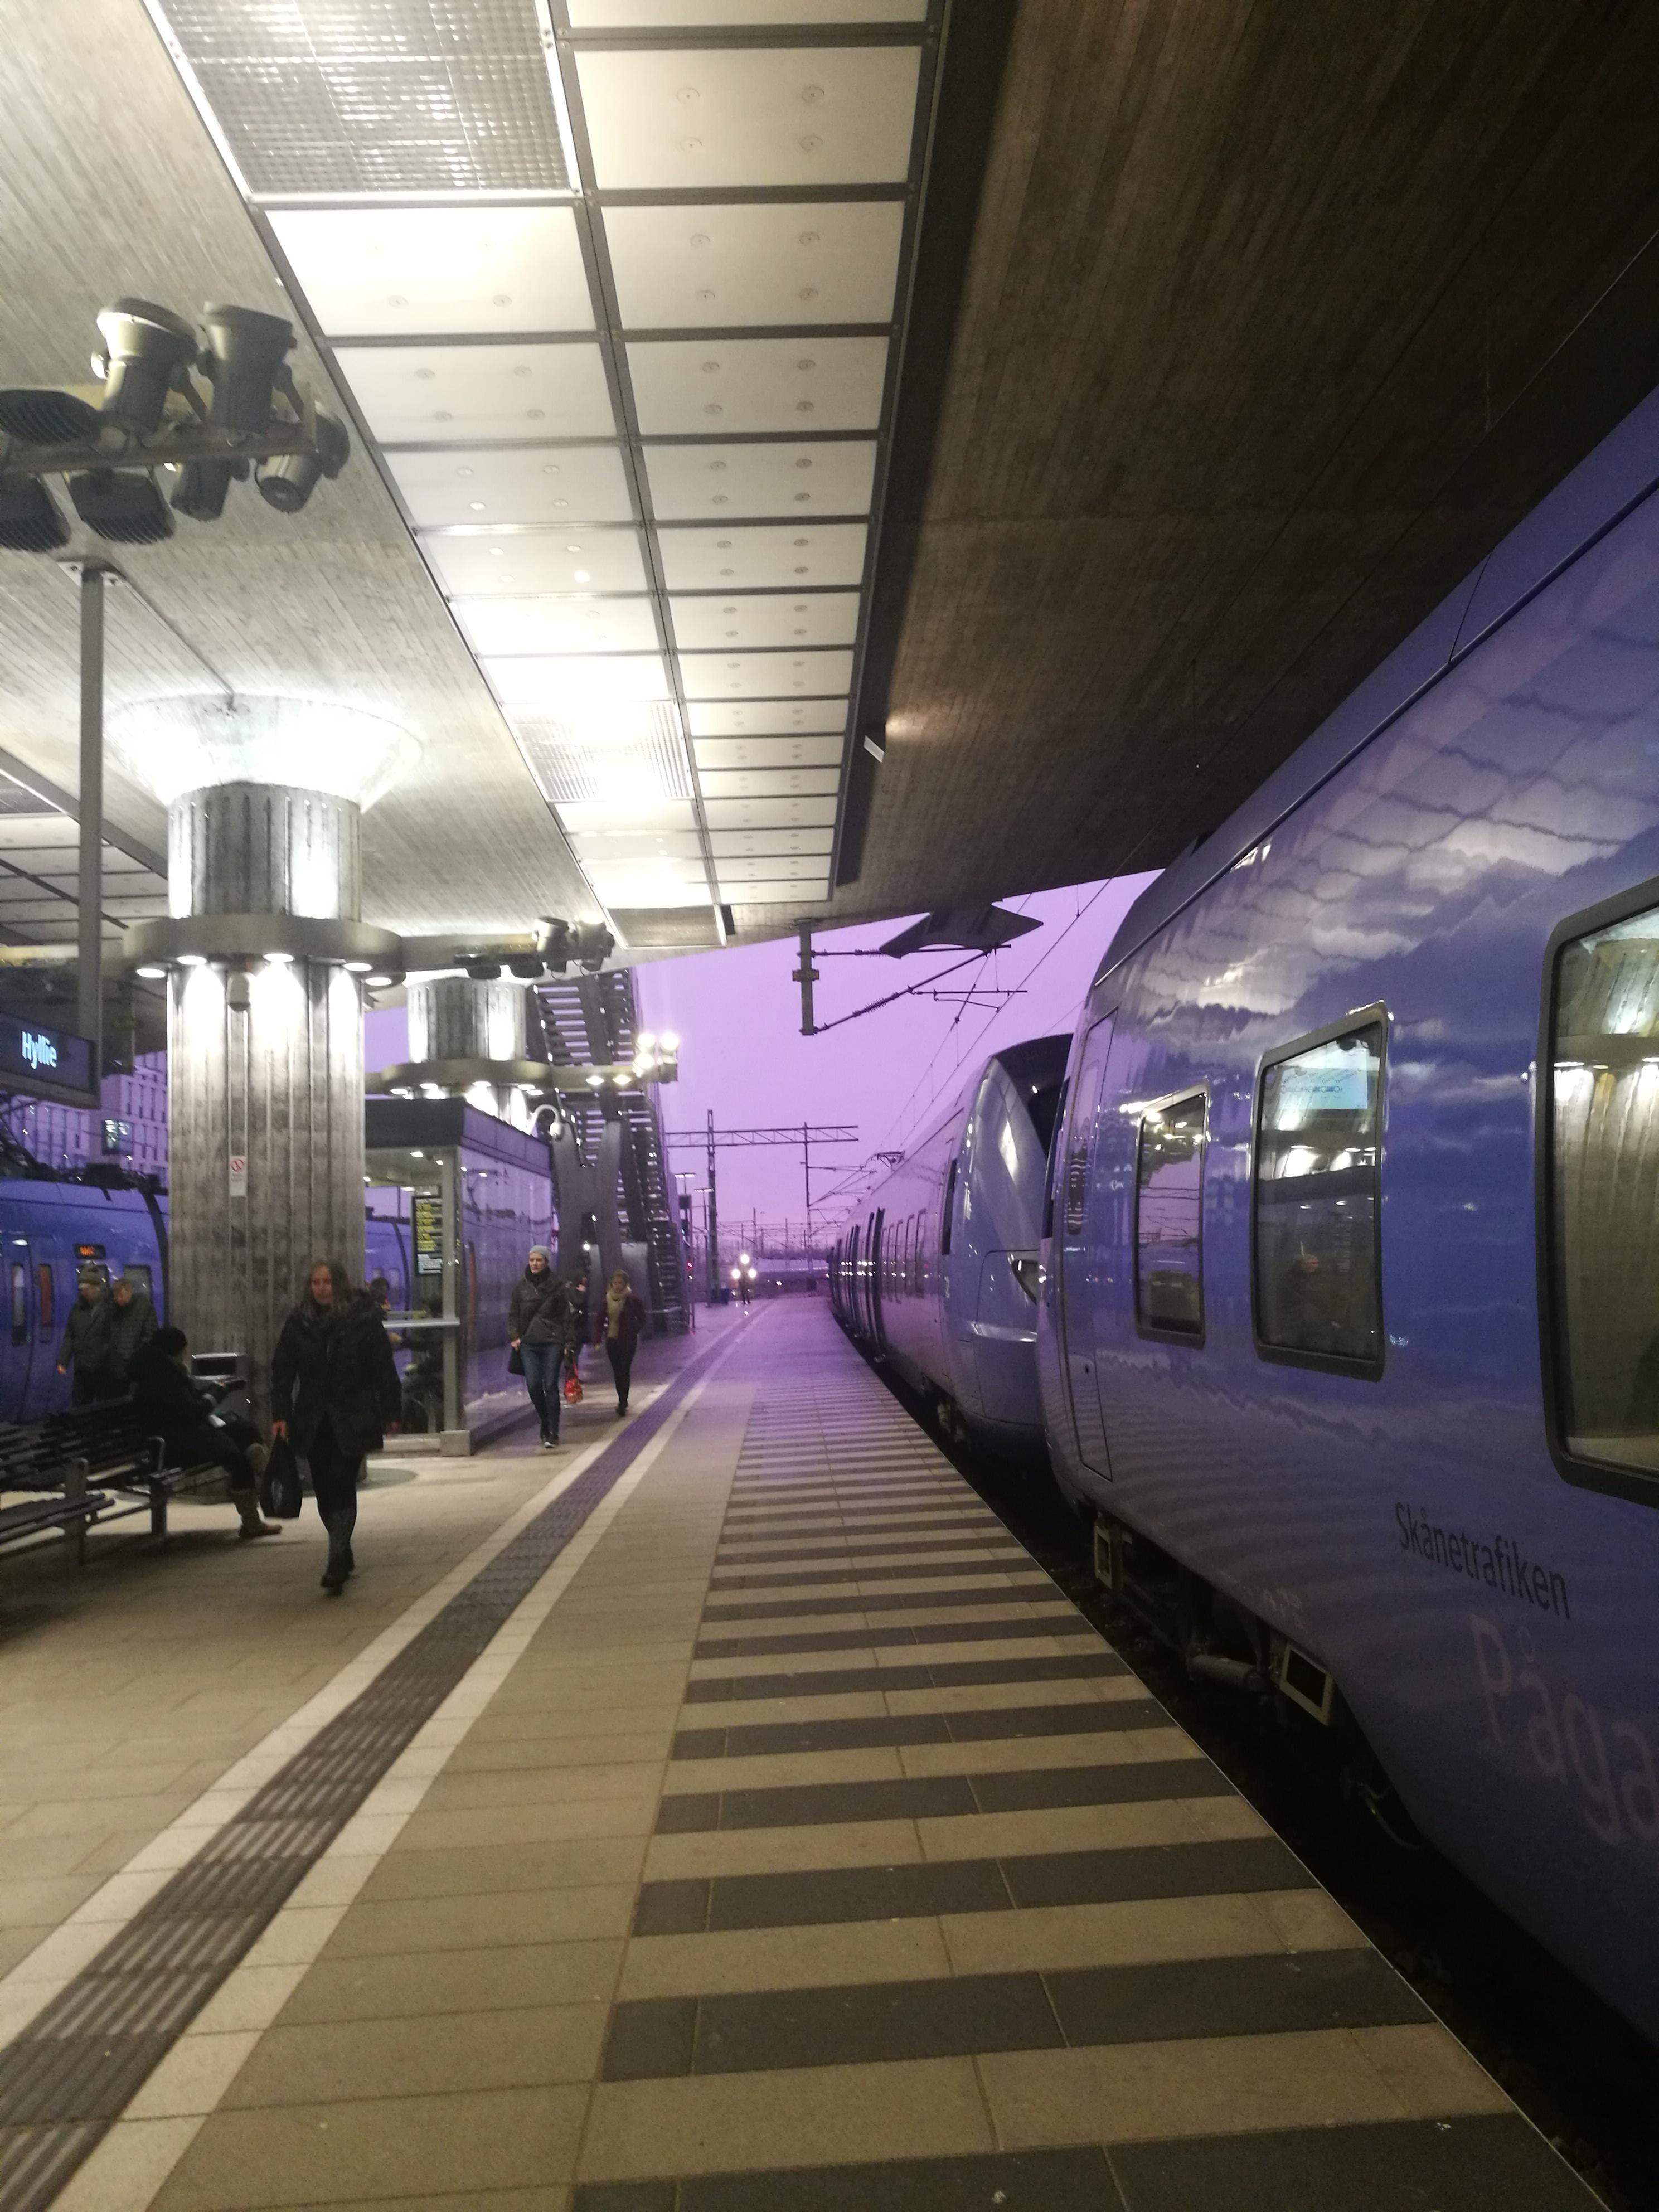 A couple of weeks ago the sky was more purple than I'd ever experienced in my life (it also matched the local trains).